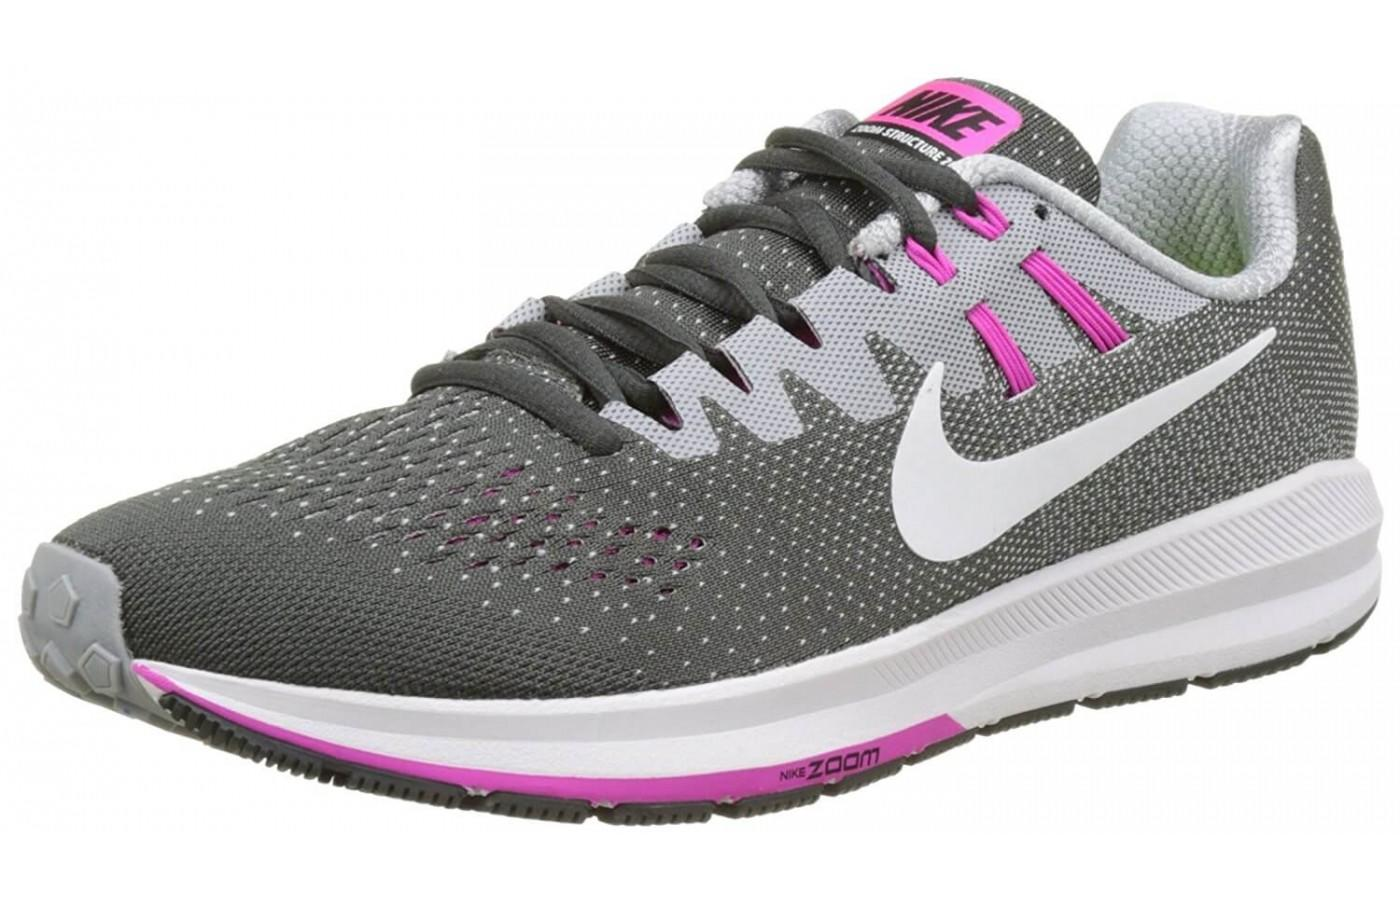 b1dce2e11c9f0f A good look at the left side of Nike air zoom structure 20 ...